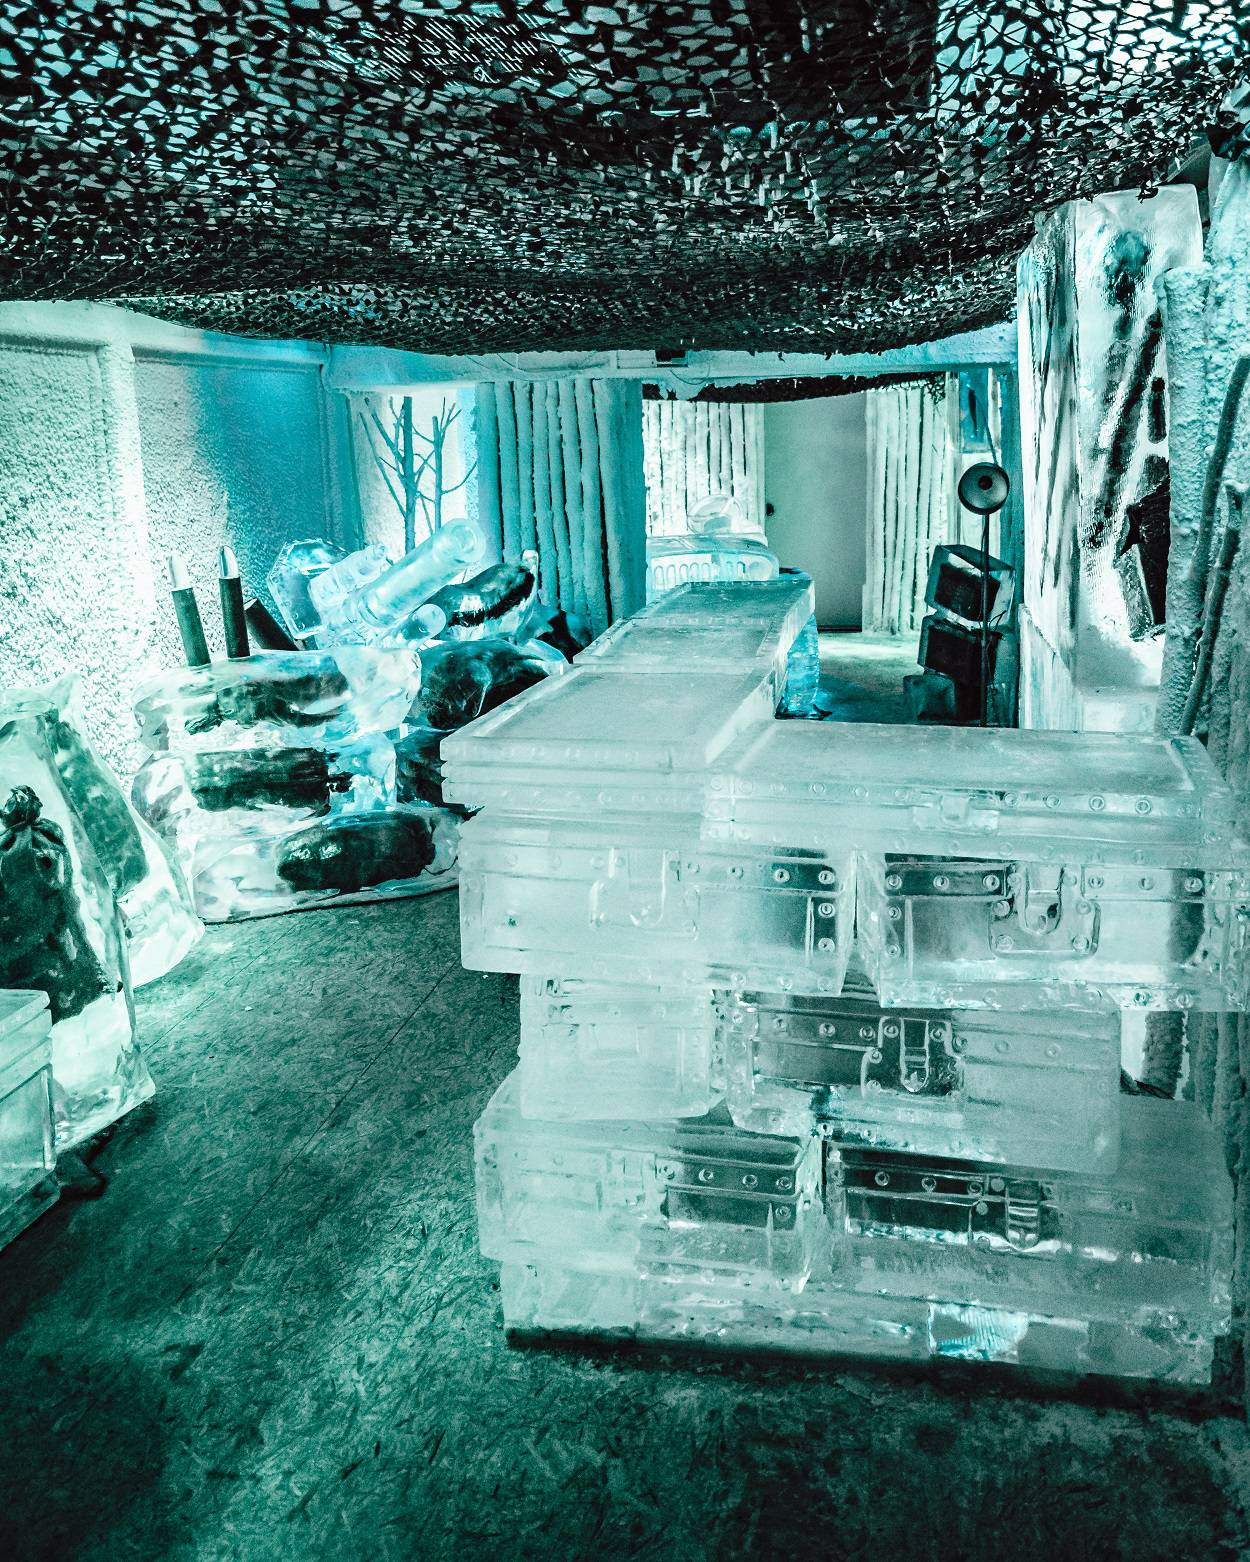 Ice_bar_Kube_Hotel_Paris